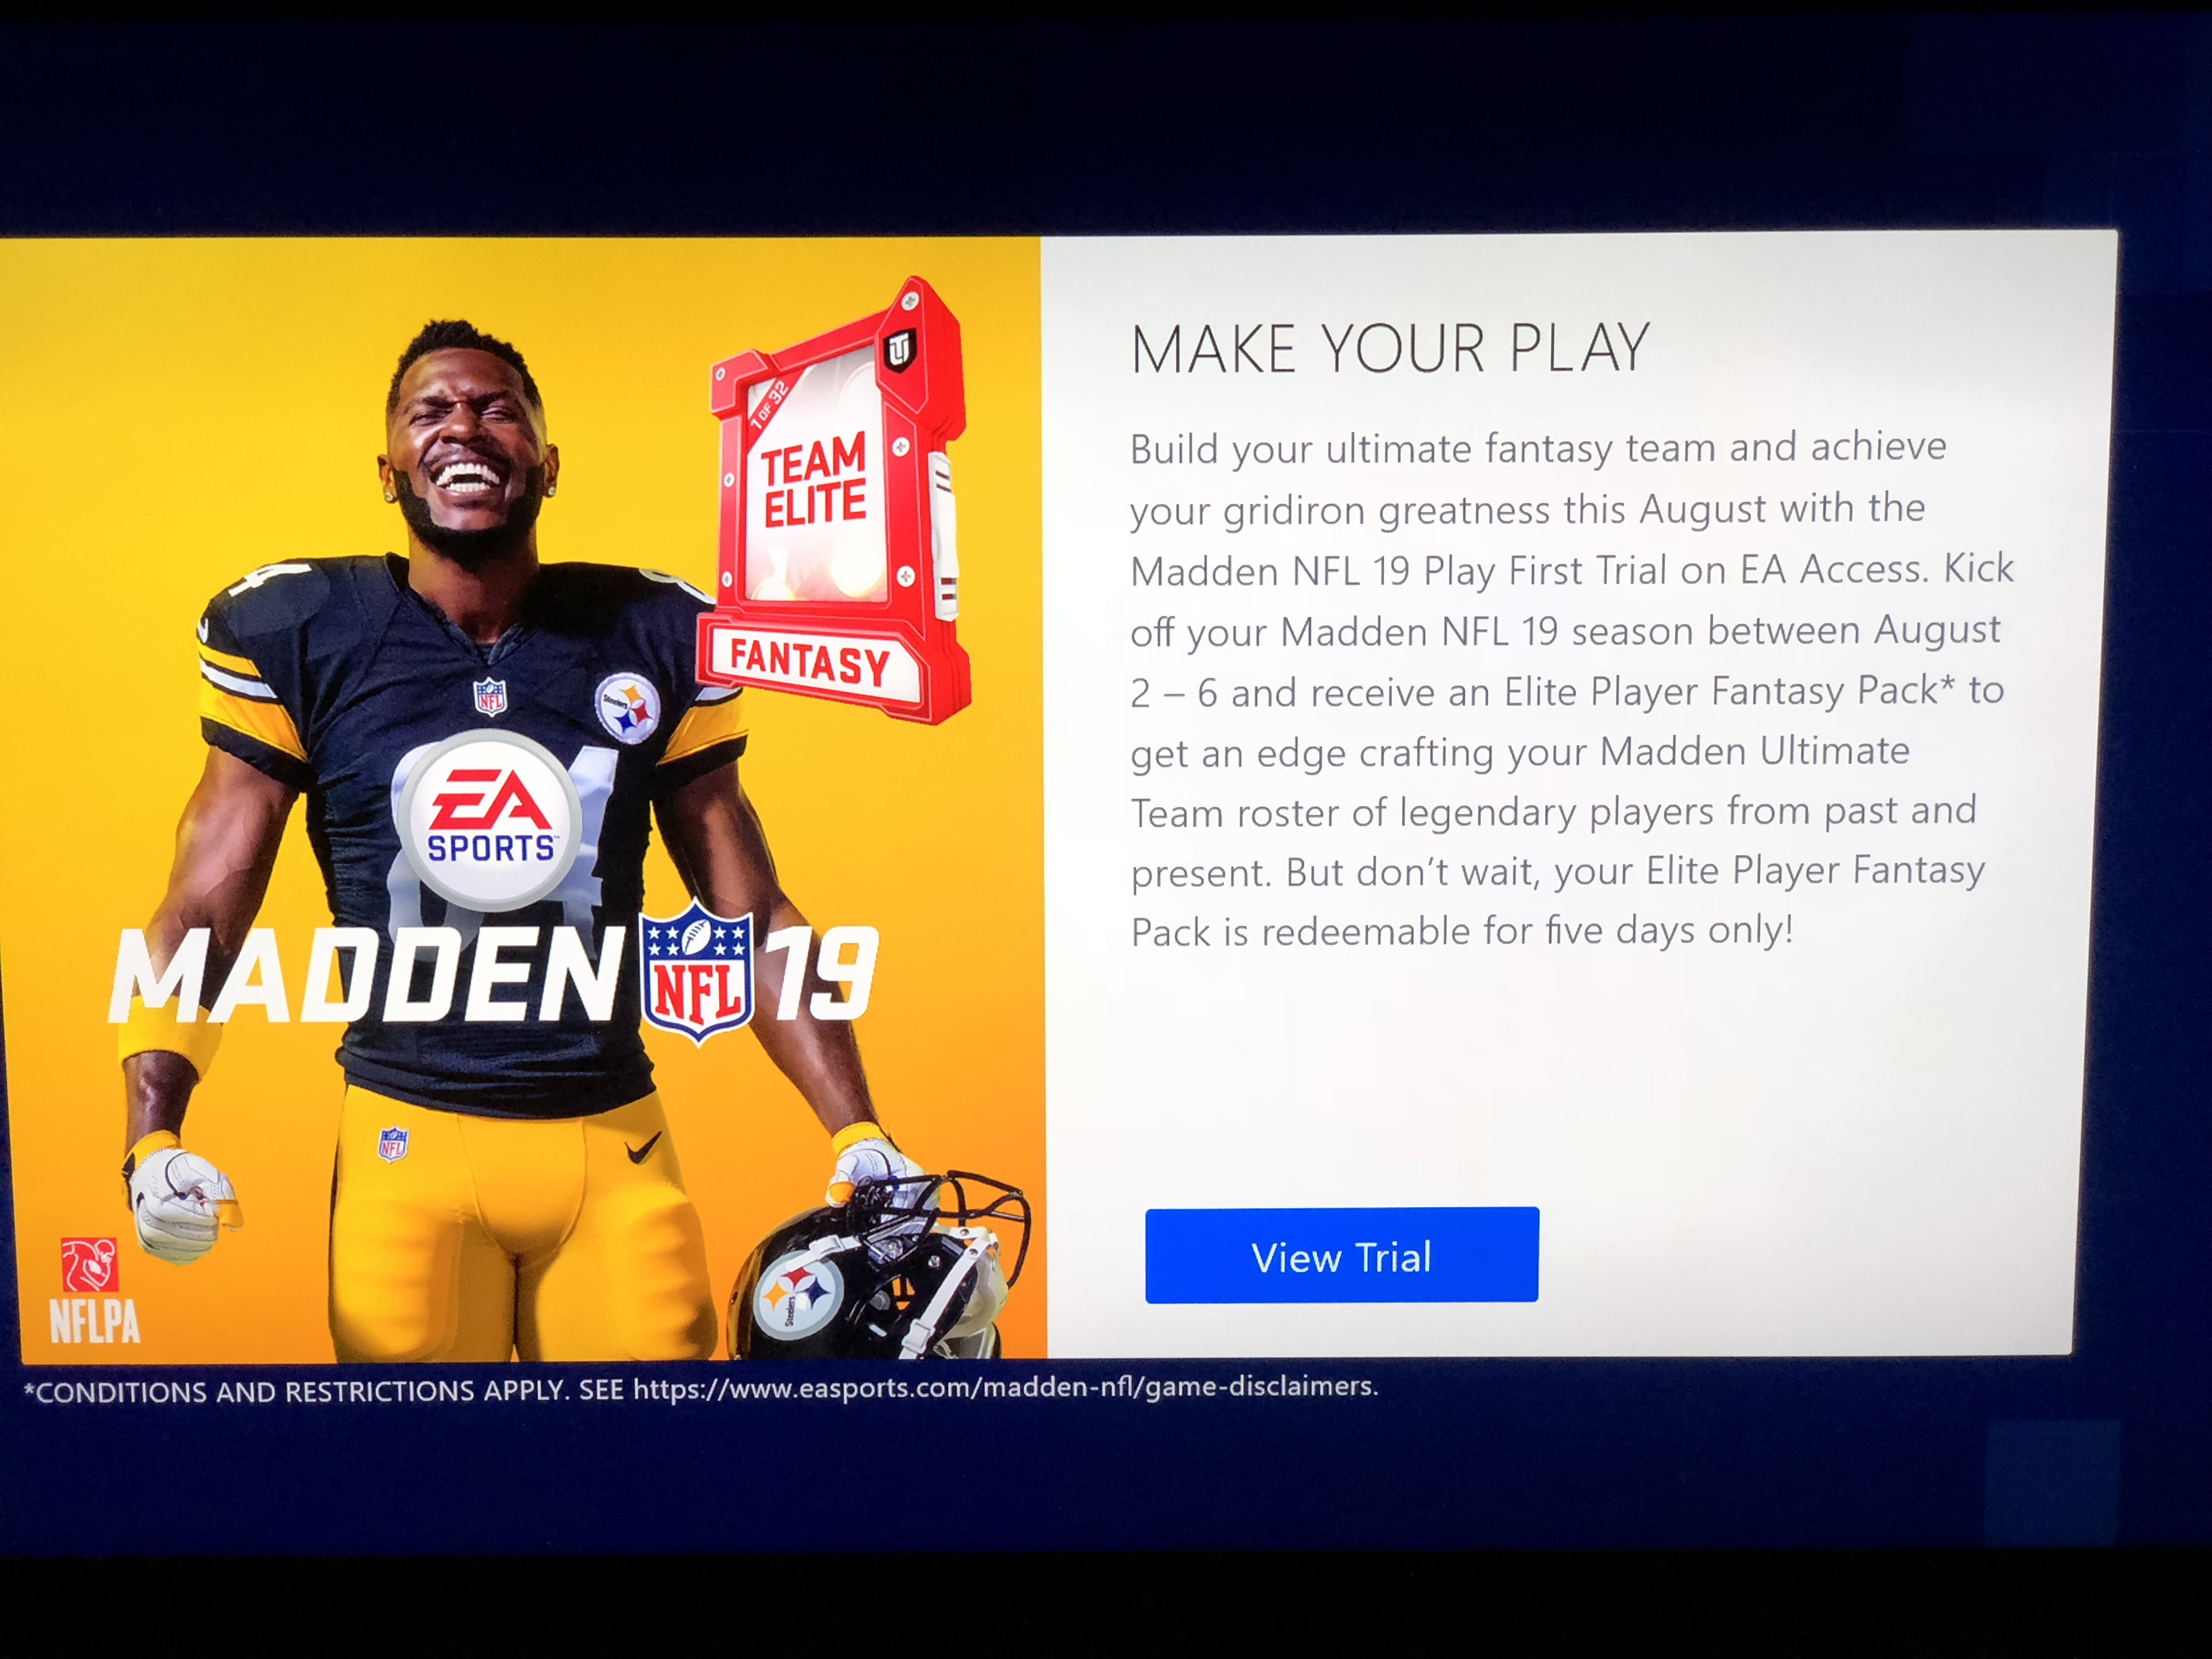 How to Play Madden 19 Now